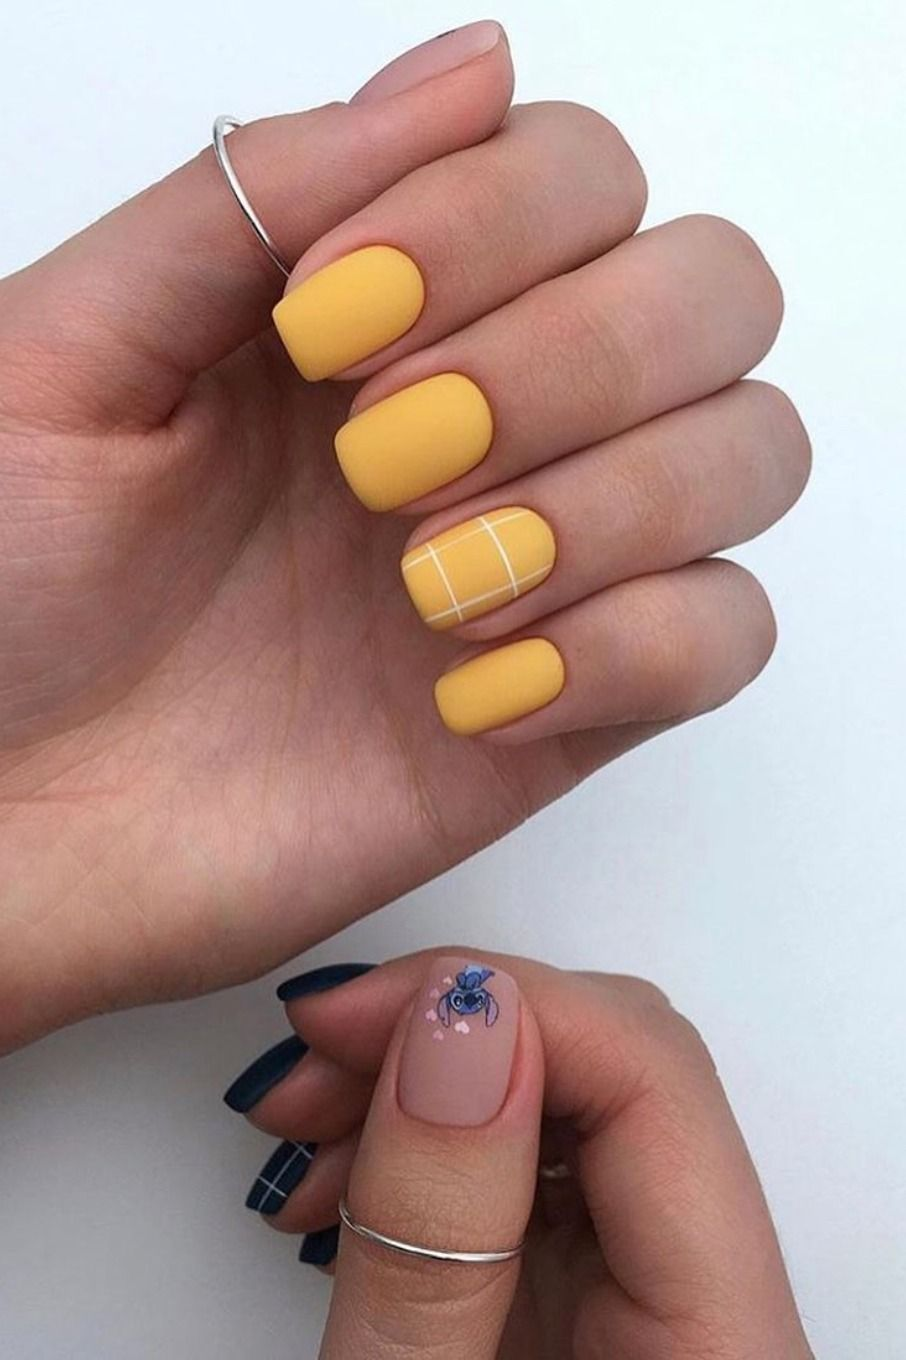 So Cute Short Acrylic Nails Ideas You Will Love Them Cute Simple Nails Olive Nails Yellow Nails Design